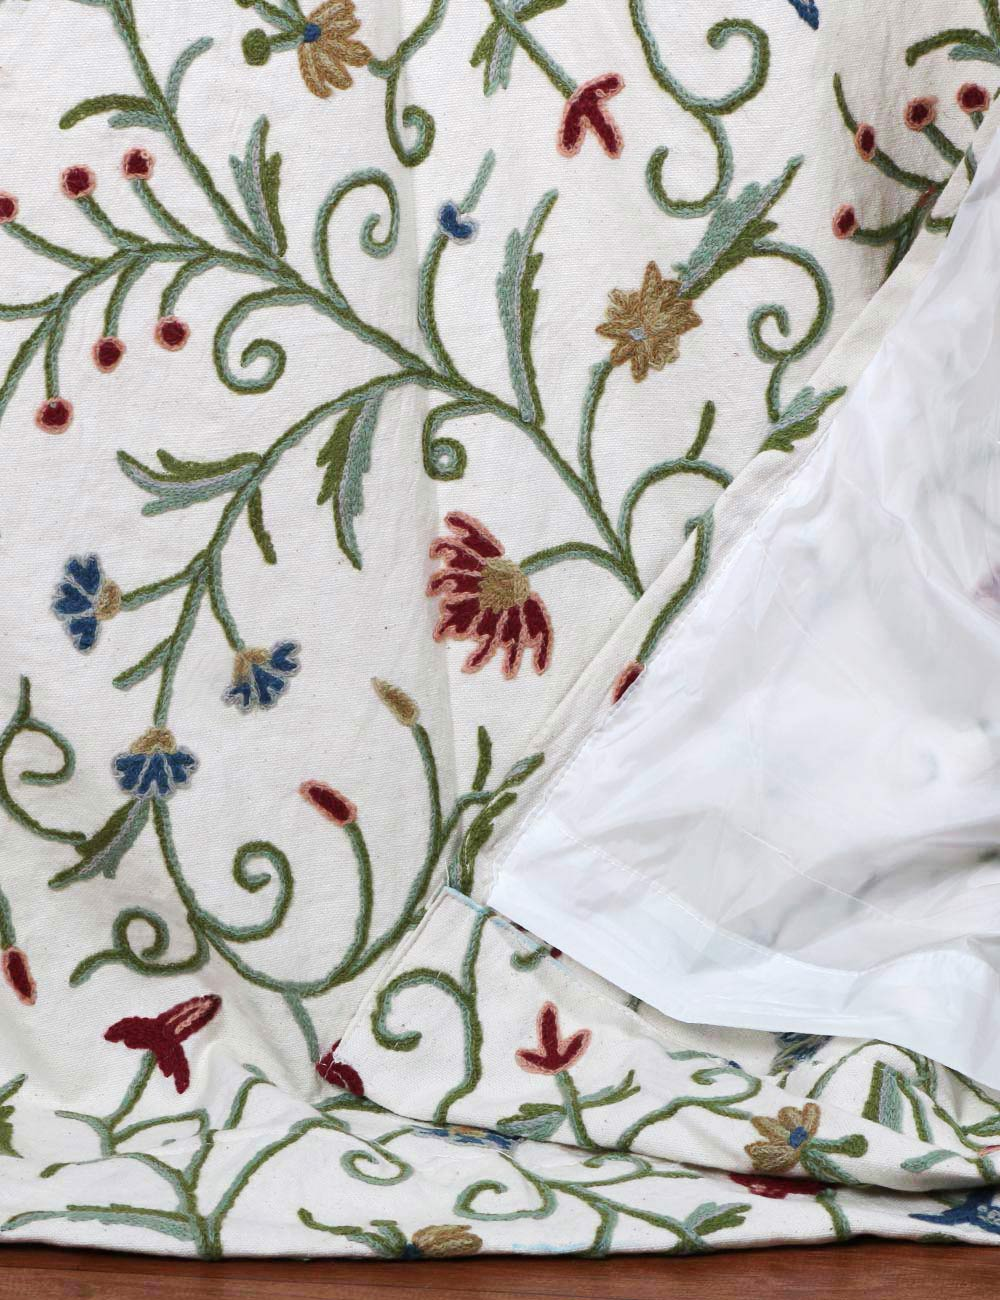 Techmal crewel curtain panels and drapes hand embroidered